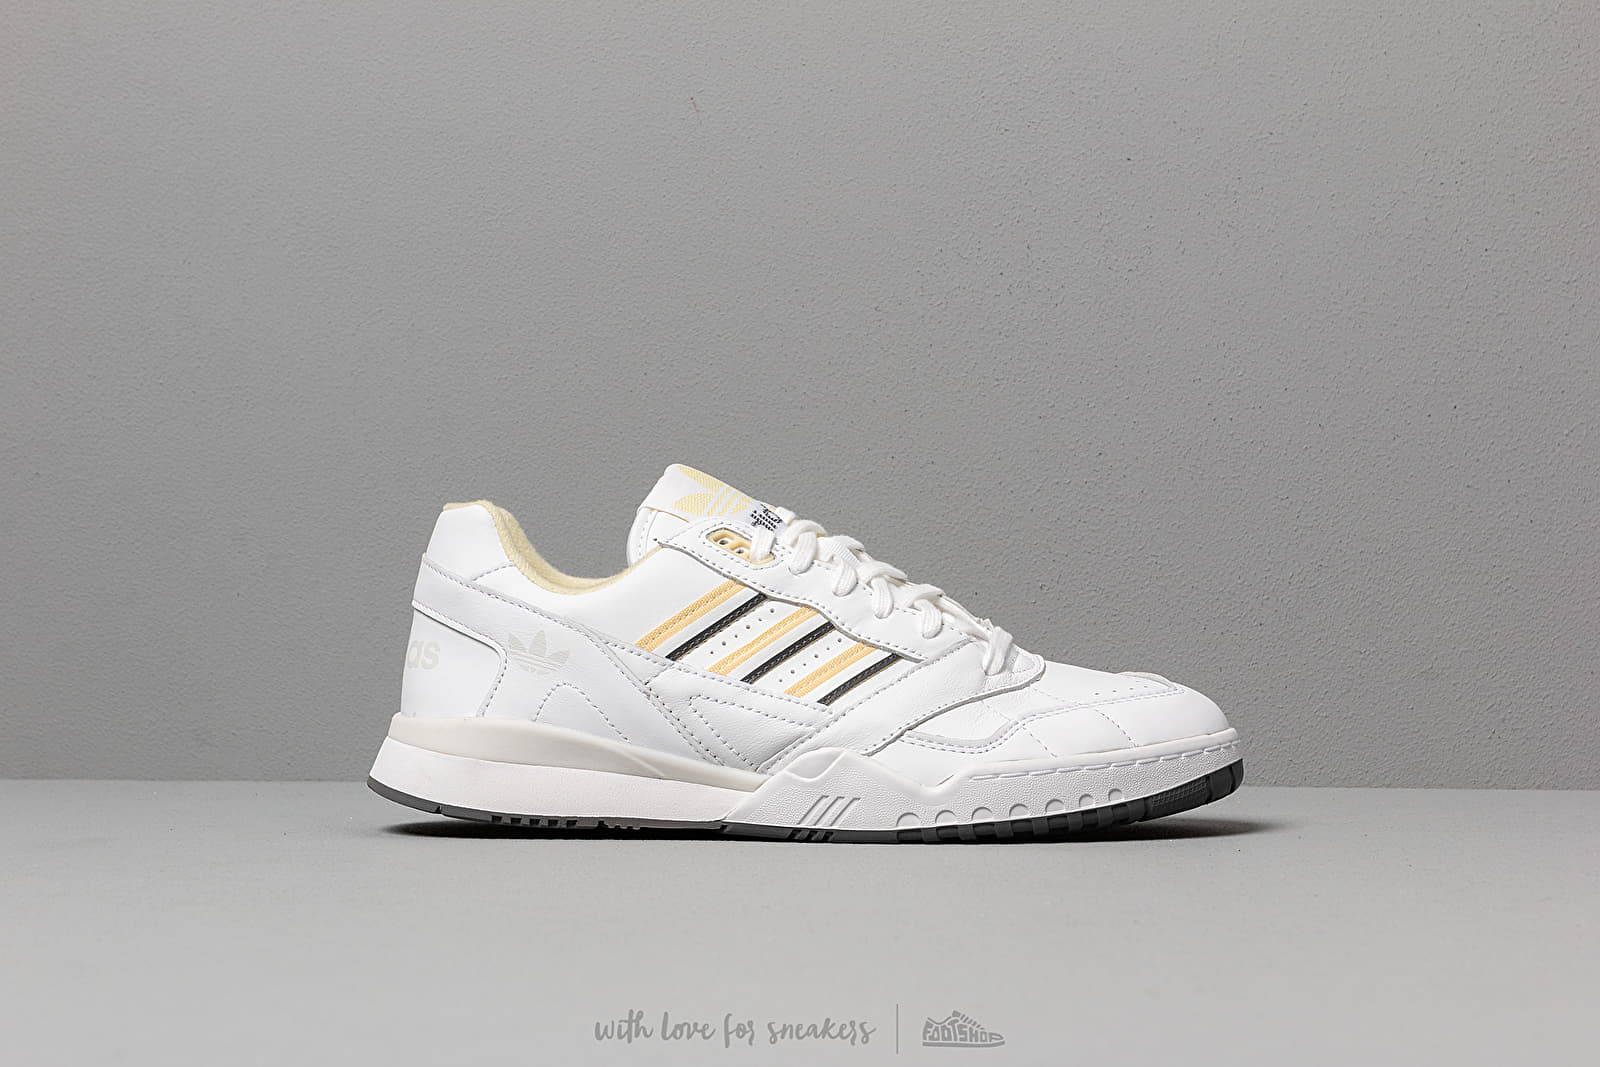 bbf4cf820f1 adidas A.R. Trainer Ftw White/ Easy Yellow/ Crystal White at a great price  92